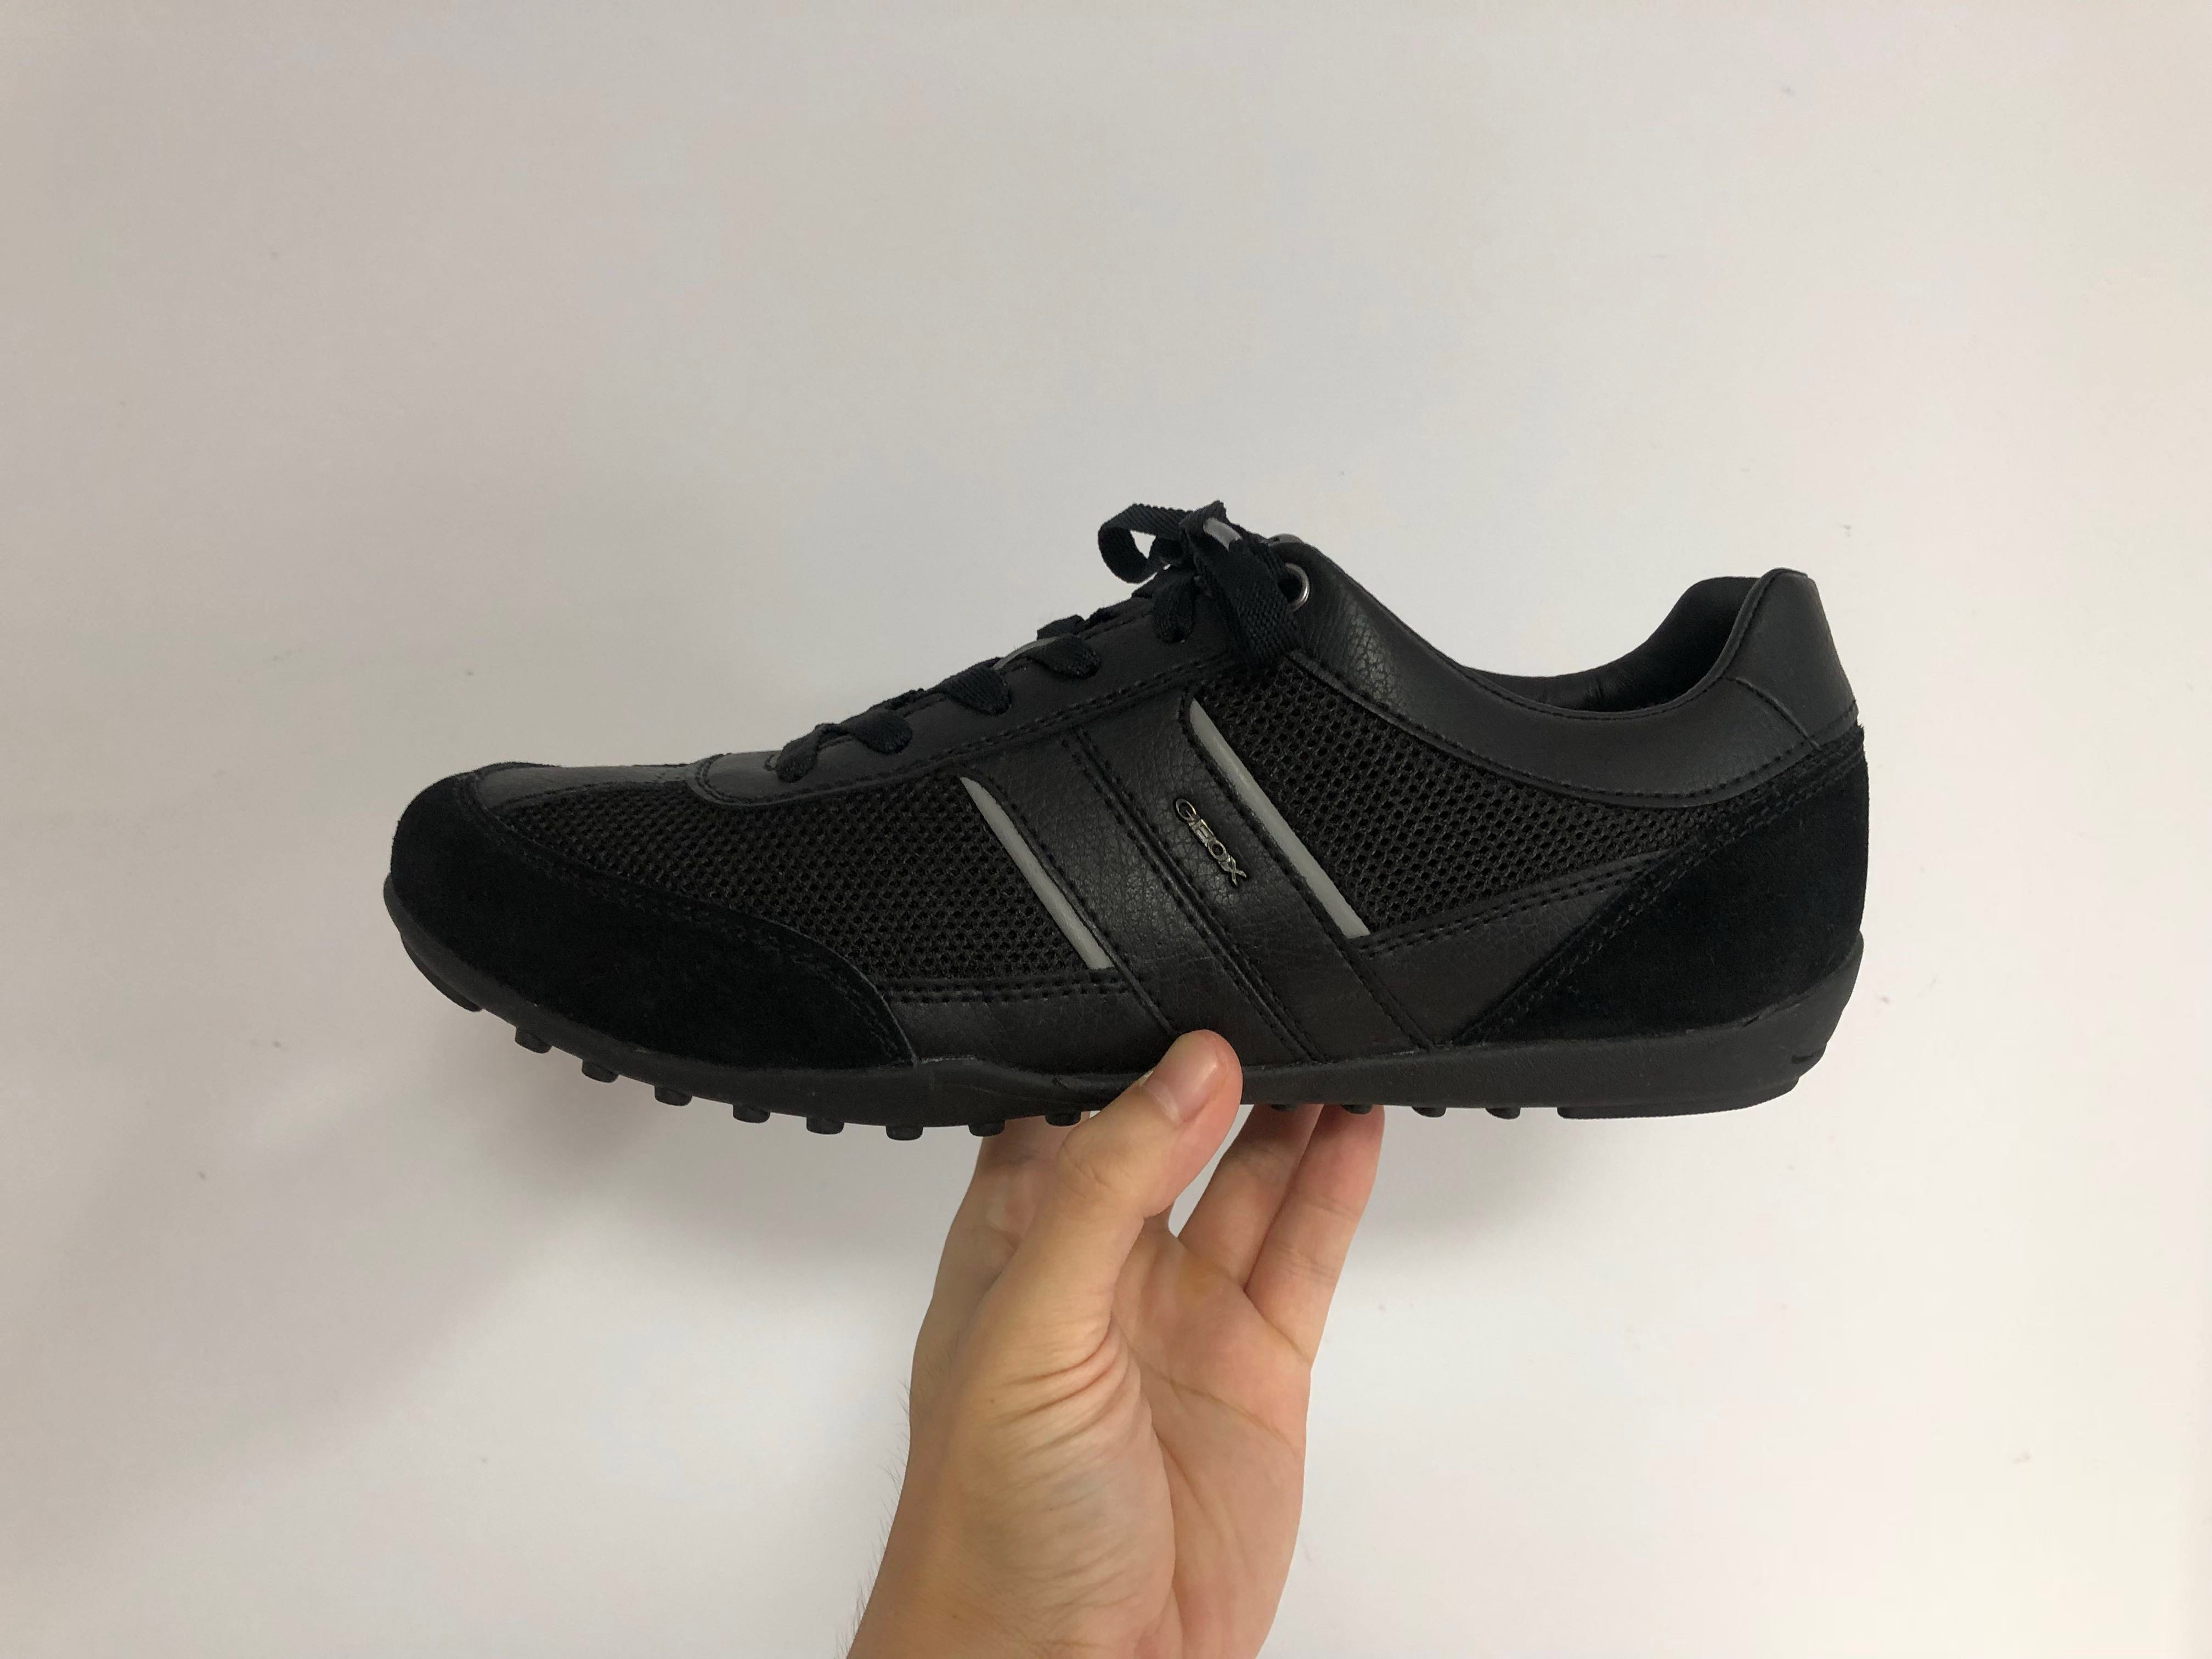 d6b22d29bc Geox Respira sneakers, Men's Fashion, Footwear, Sneakers on Carousell